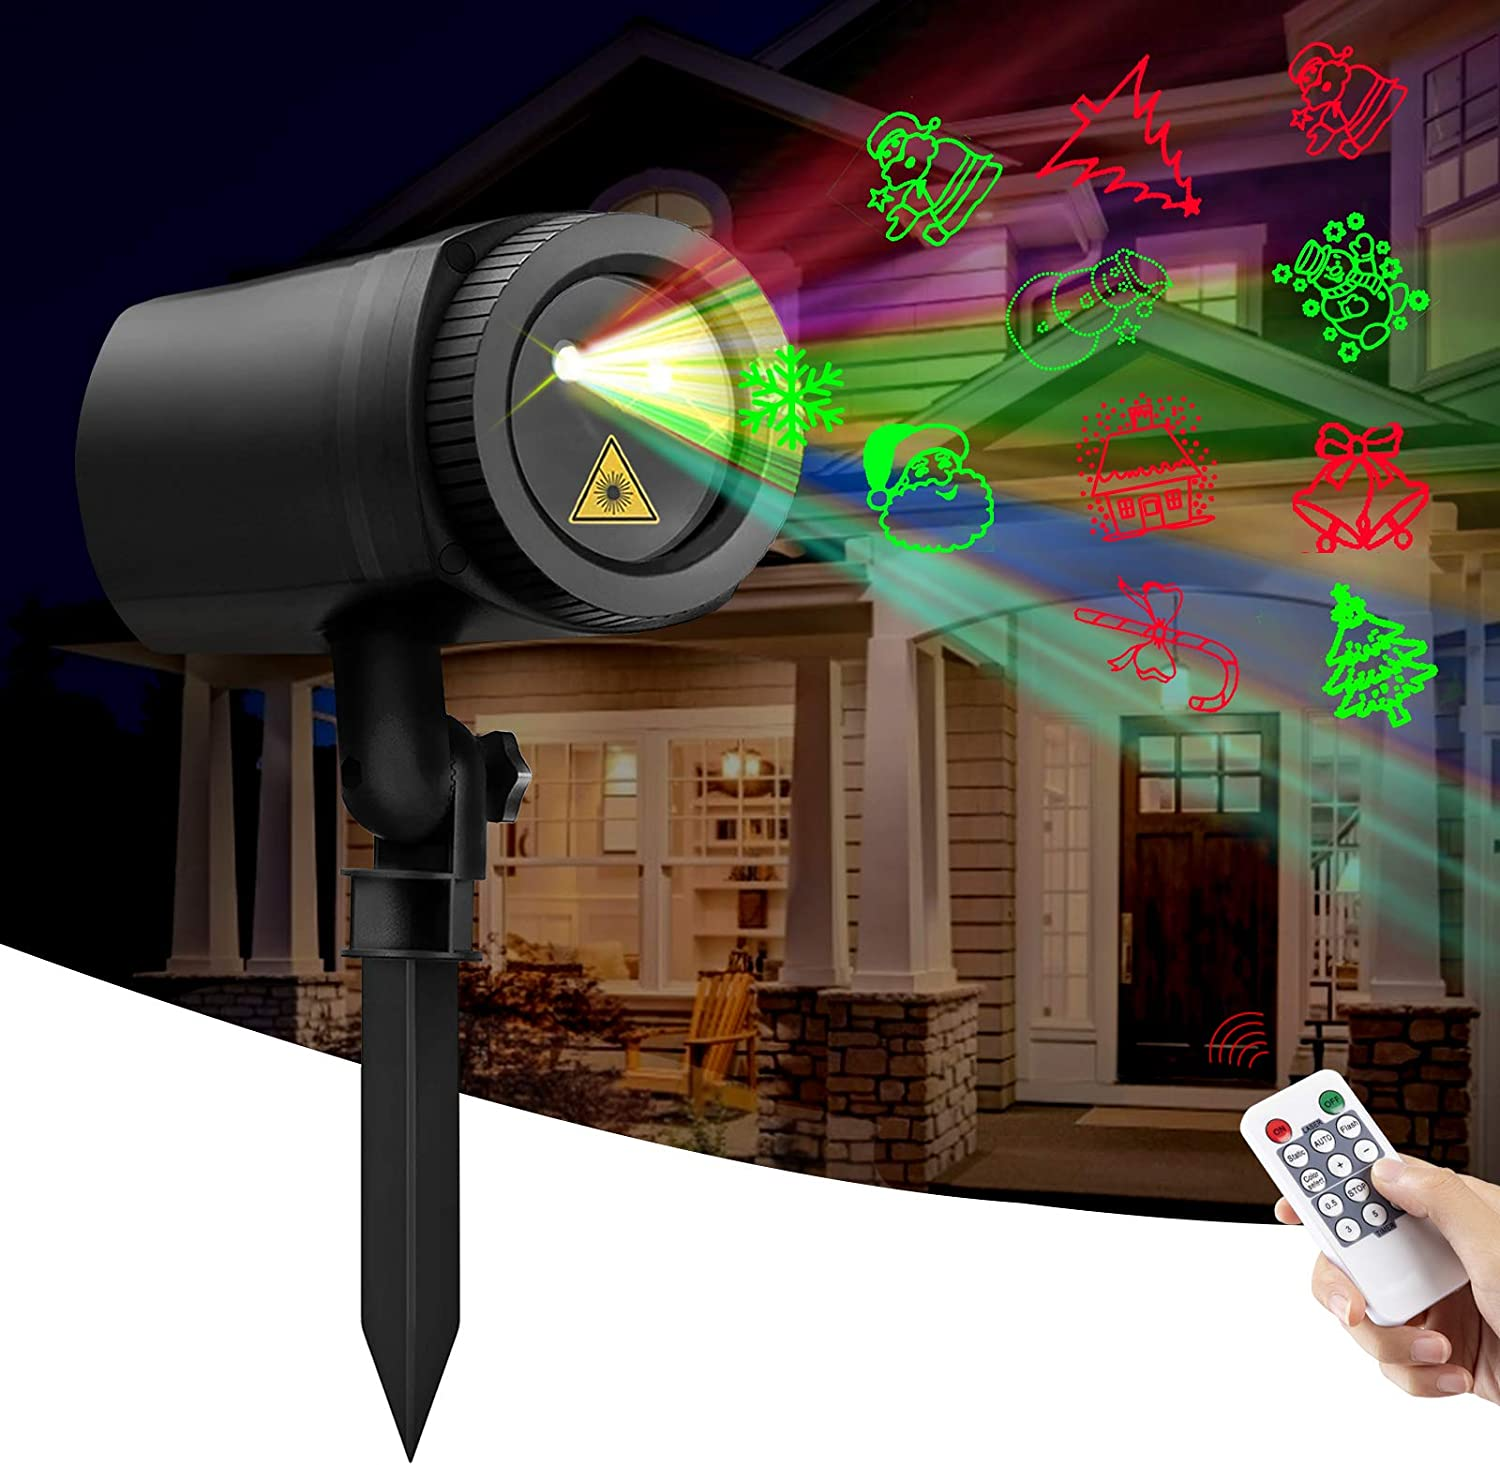 Sunolga Christmas Laser Lights, 12 Patterns Waterproof Outdoor Projector Pattern Lights with RF Wireless Remote for Garden Patio Wall Xmas Holiday Party